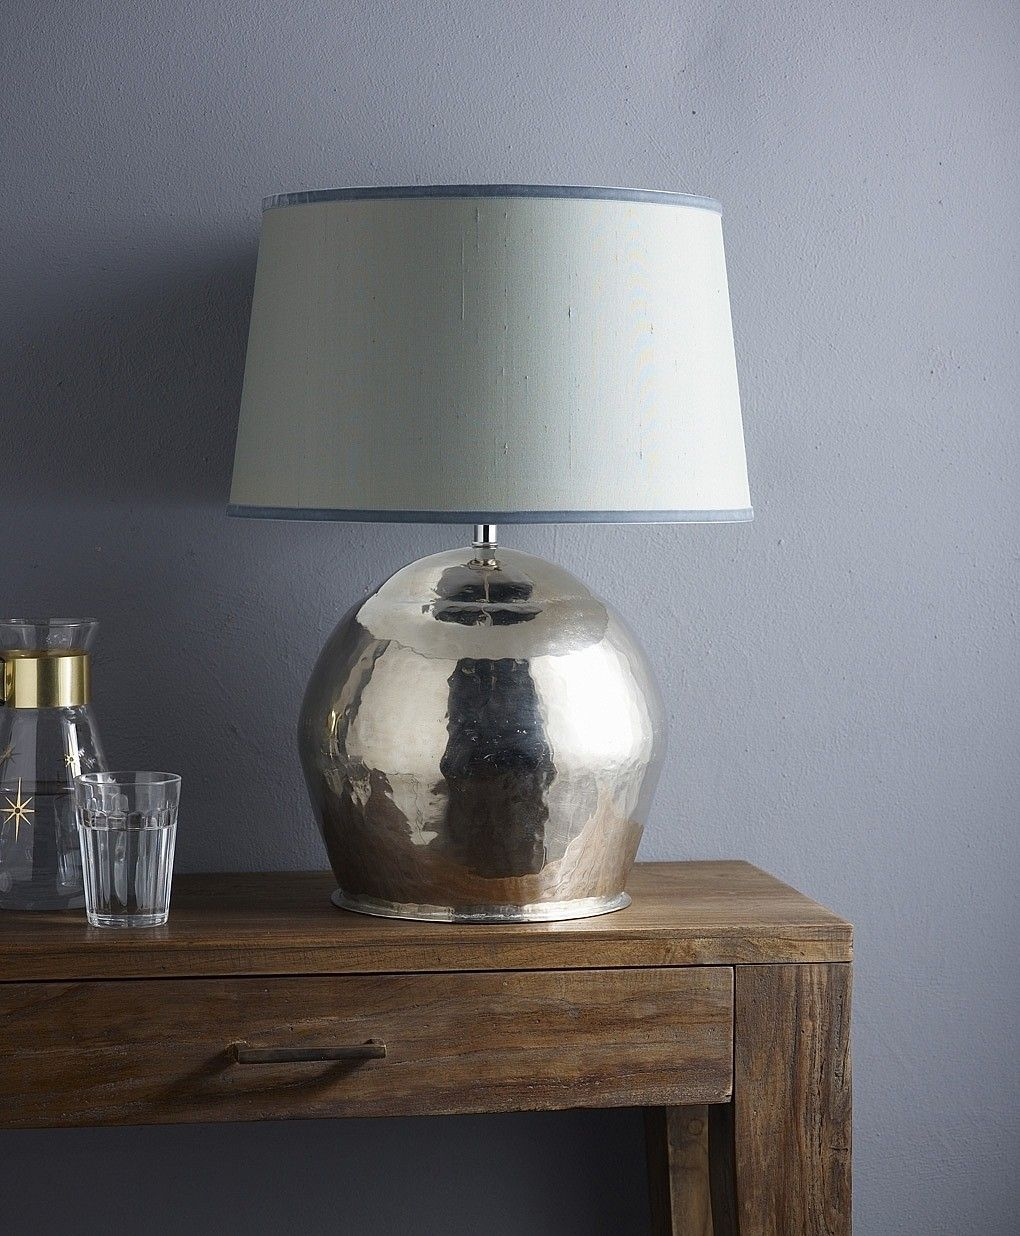 Cottage Home Refinishing An Old Lamp Base Painting Lamps Spray Paint Lamps Lamp